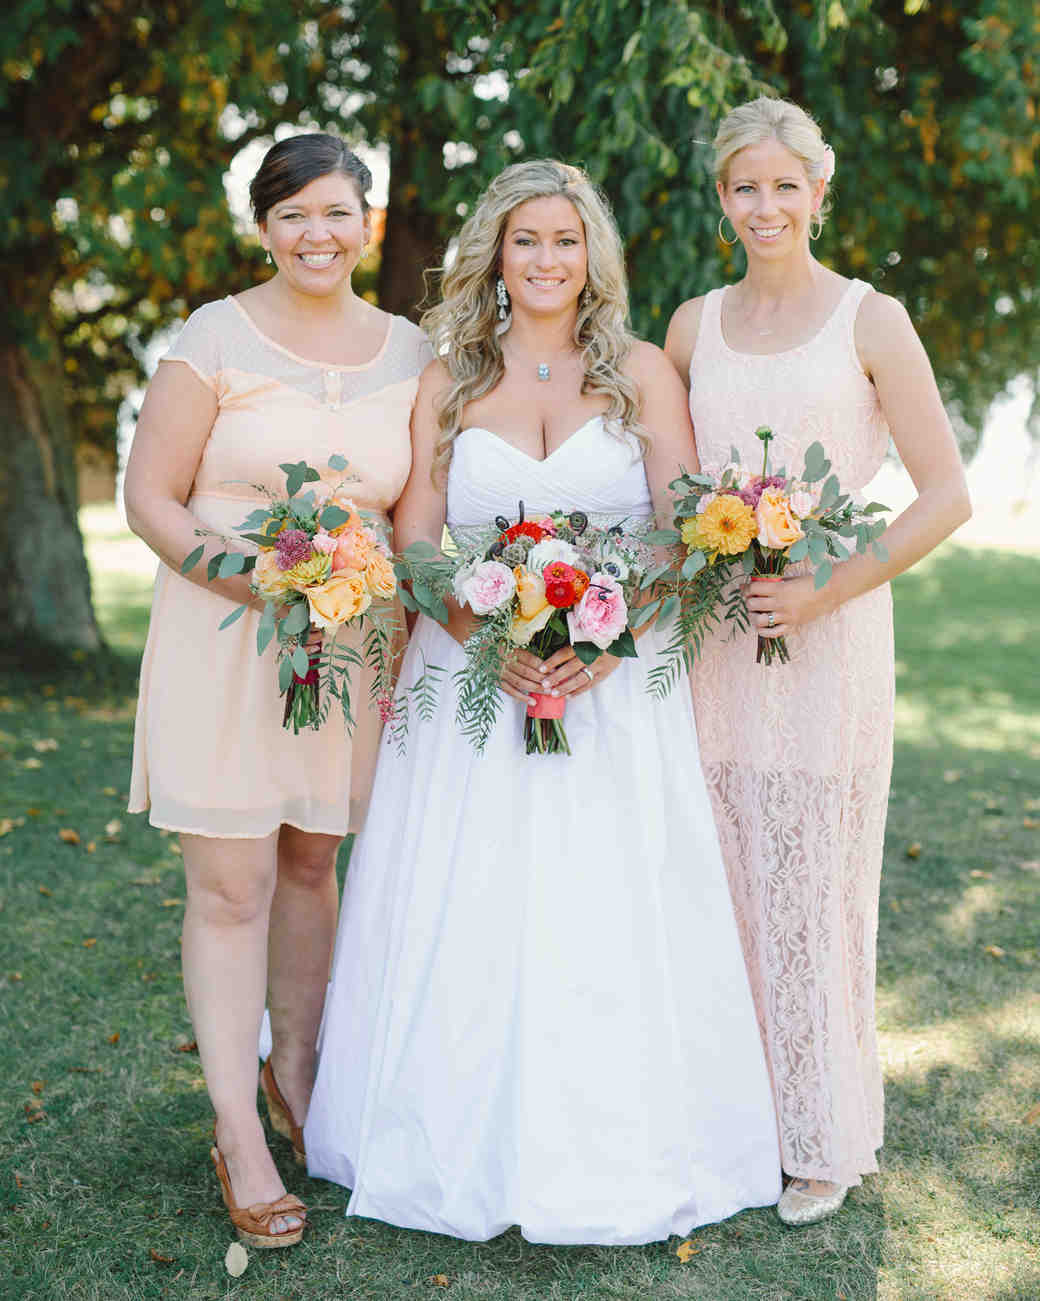 lizzy-bucky-wedding-bridesmaids-267-s111857-0315.jpg